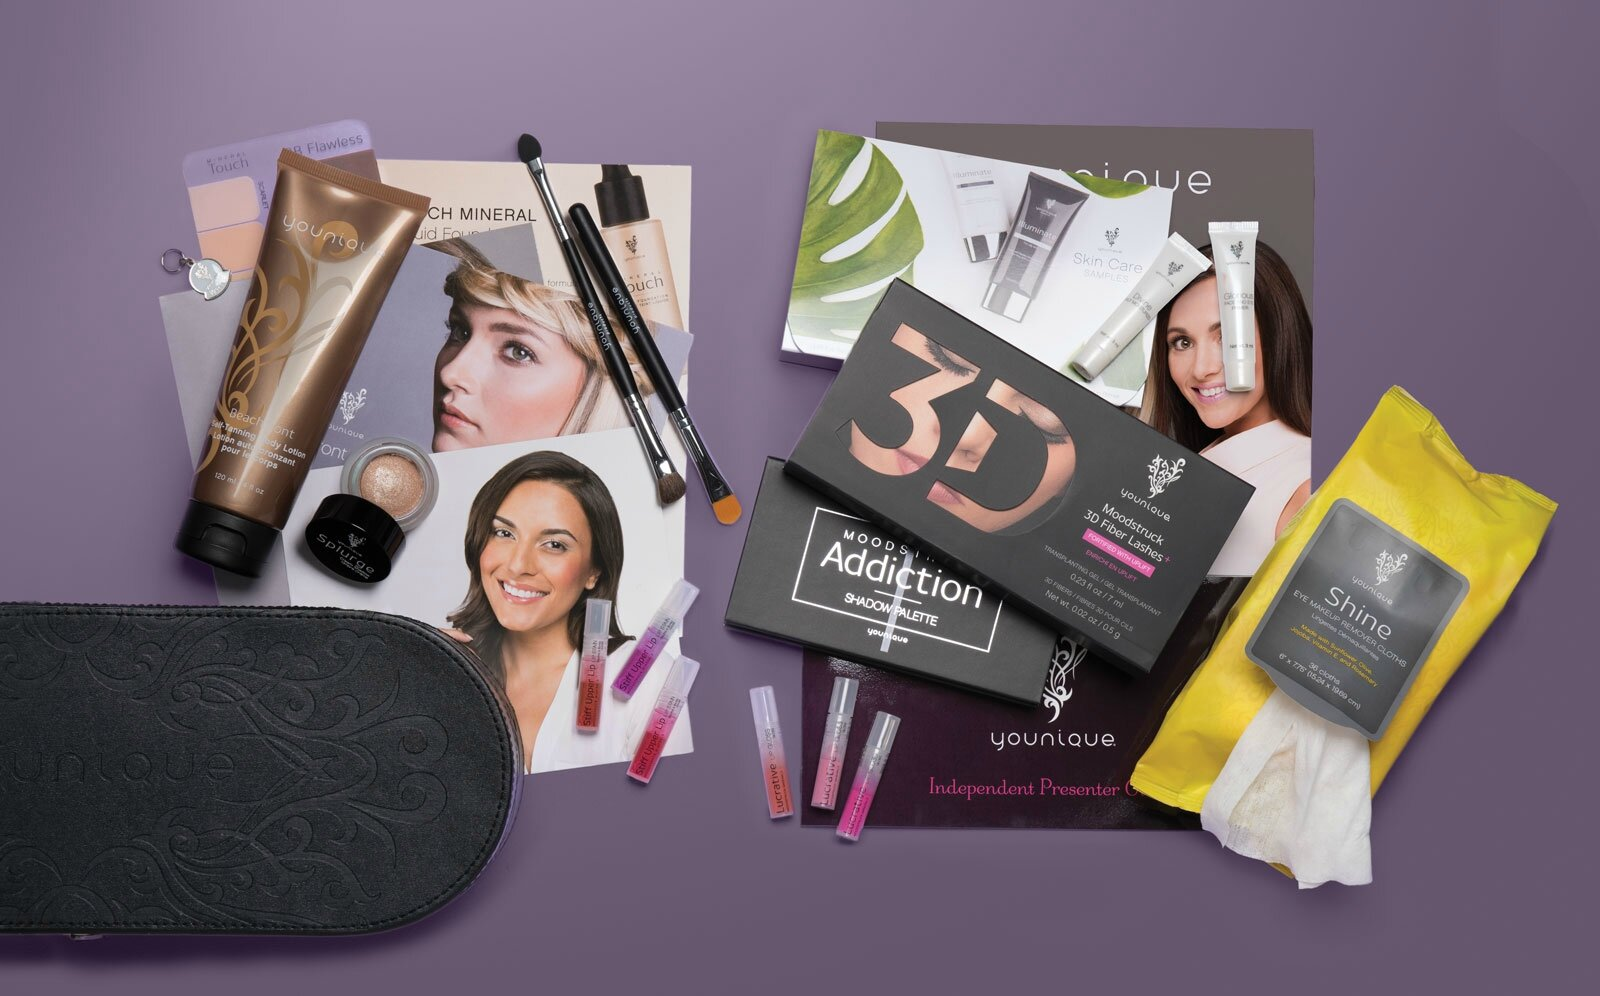 Devenir ambassadrice Younique